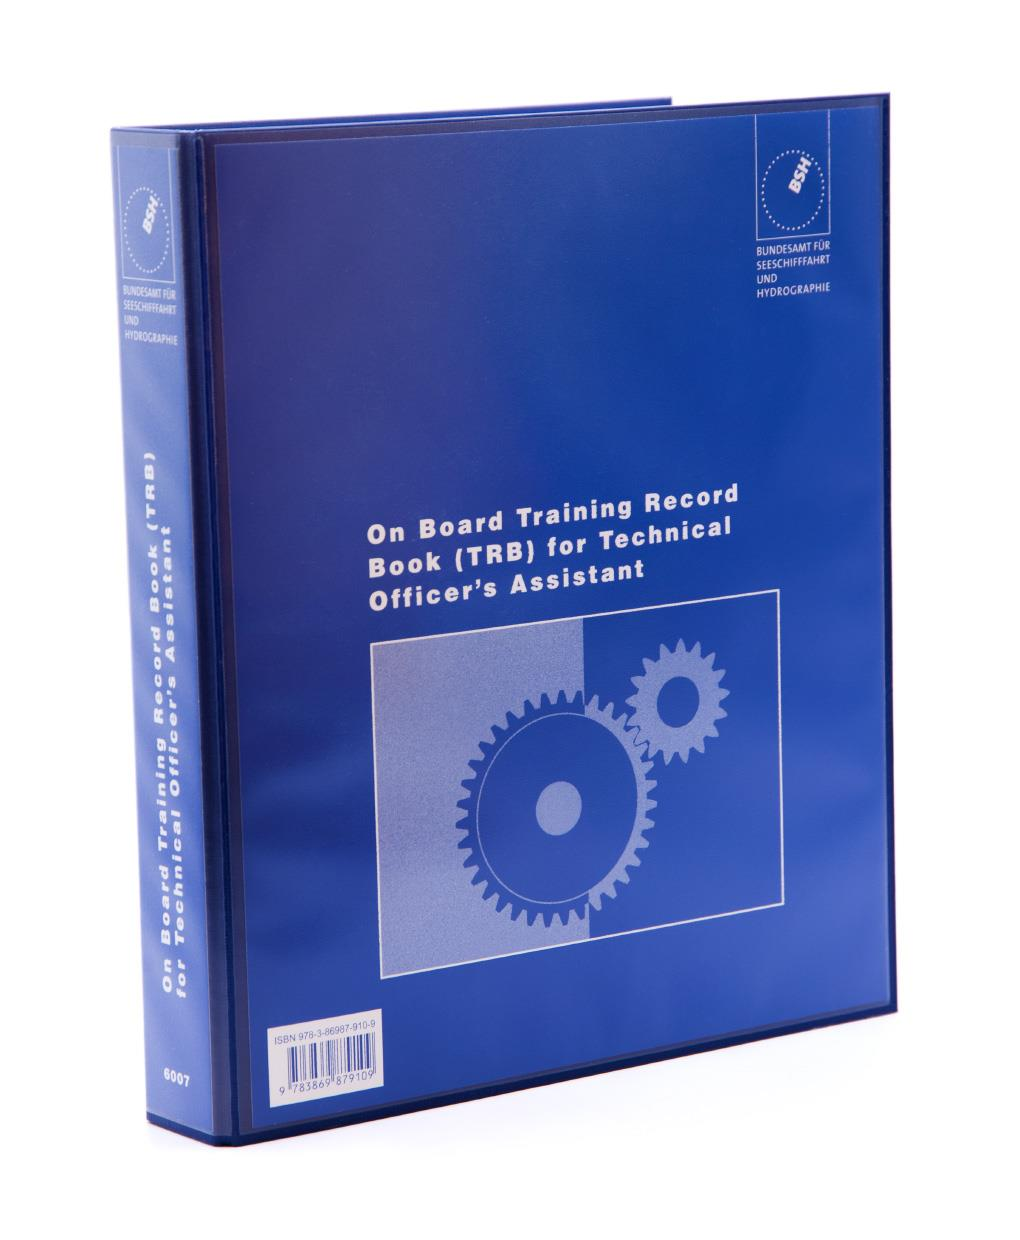 On Board Training Record Book for Technical Officer's Assistant